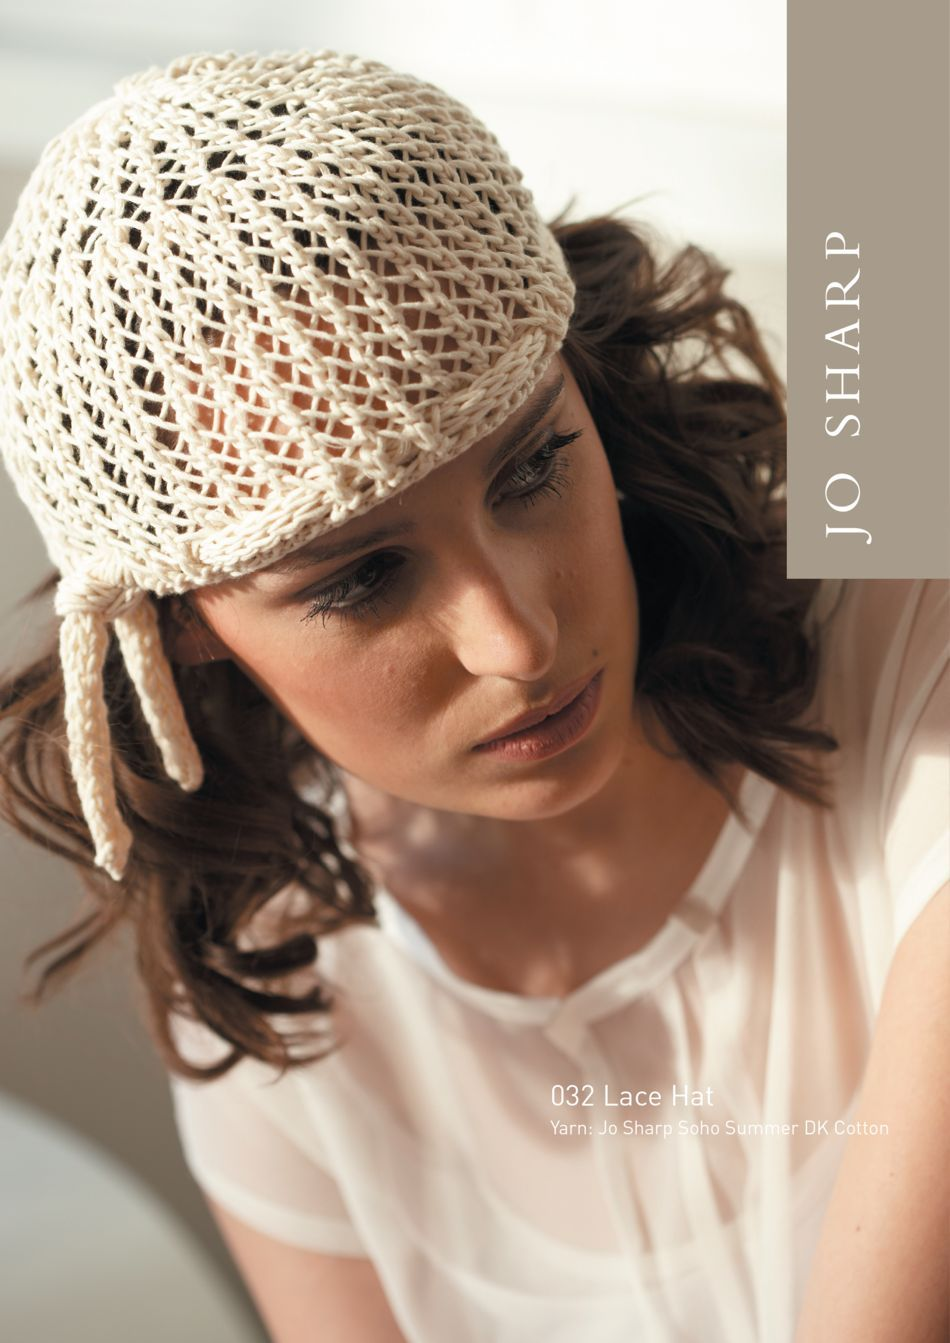 Jo Sharp Moss Stitch Beanie Pattern, Knitting Pattern ...